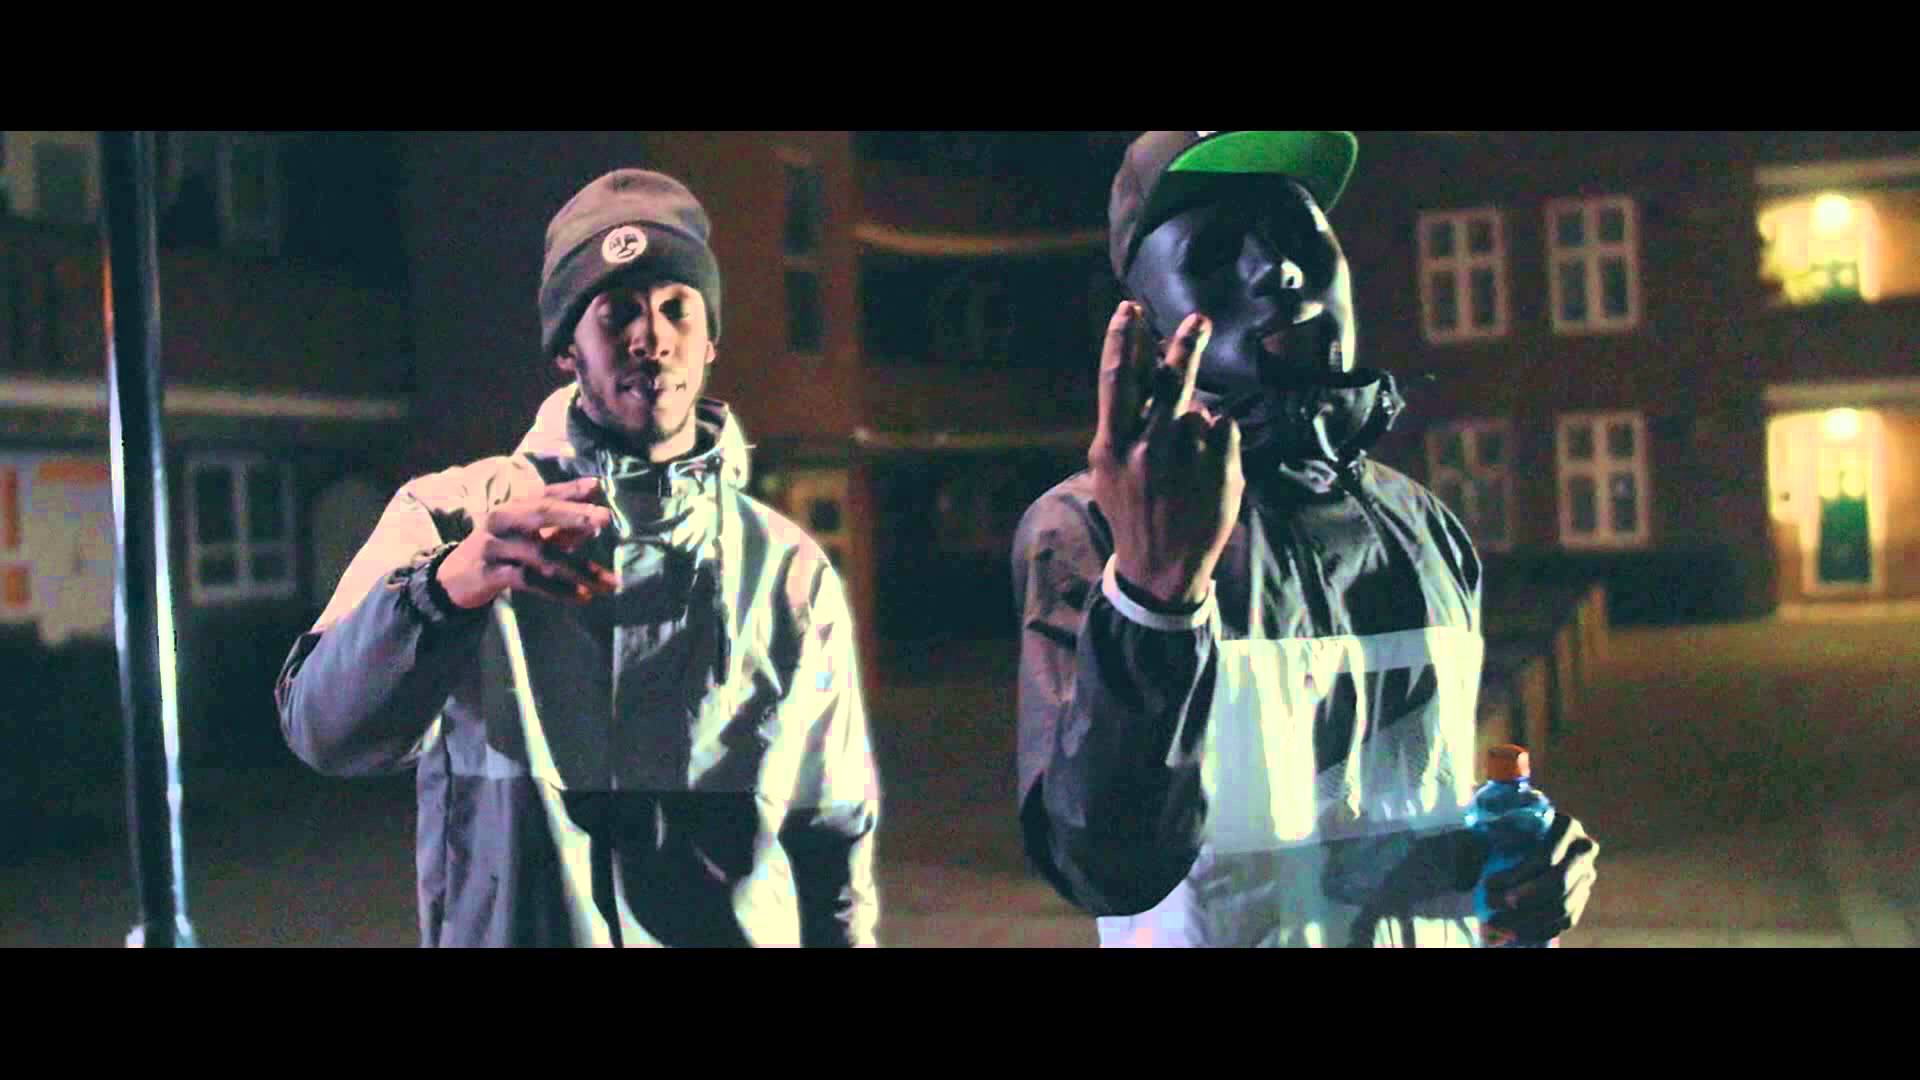 StampFace (86) x LD (67) - I Trap [Music Video] @StampFace1up @Scribz6ix7even   Link Up TV